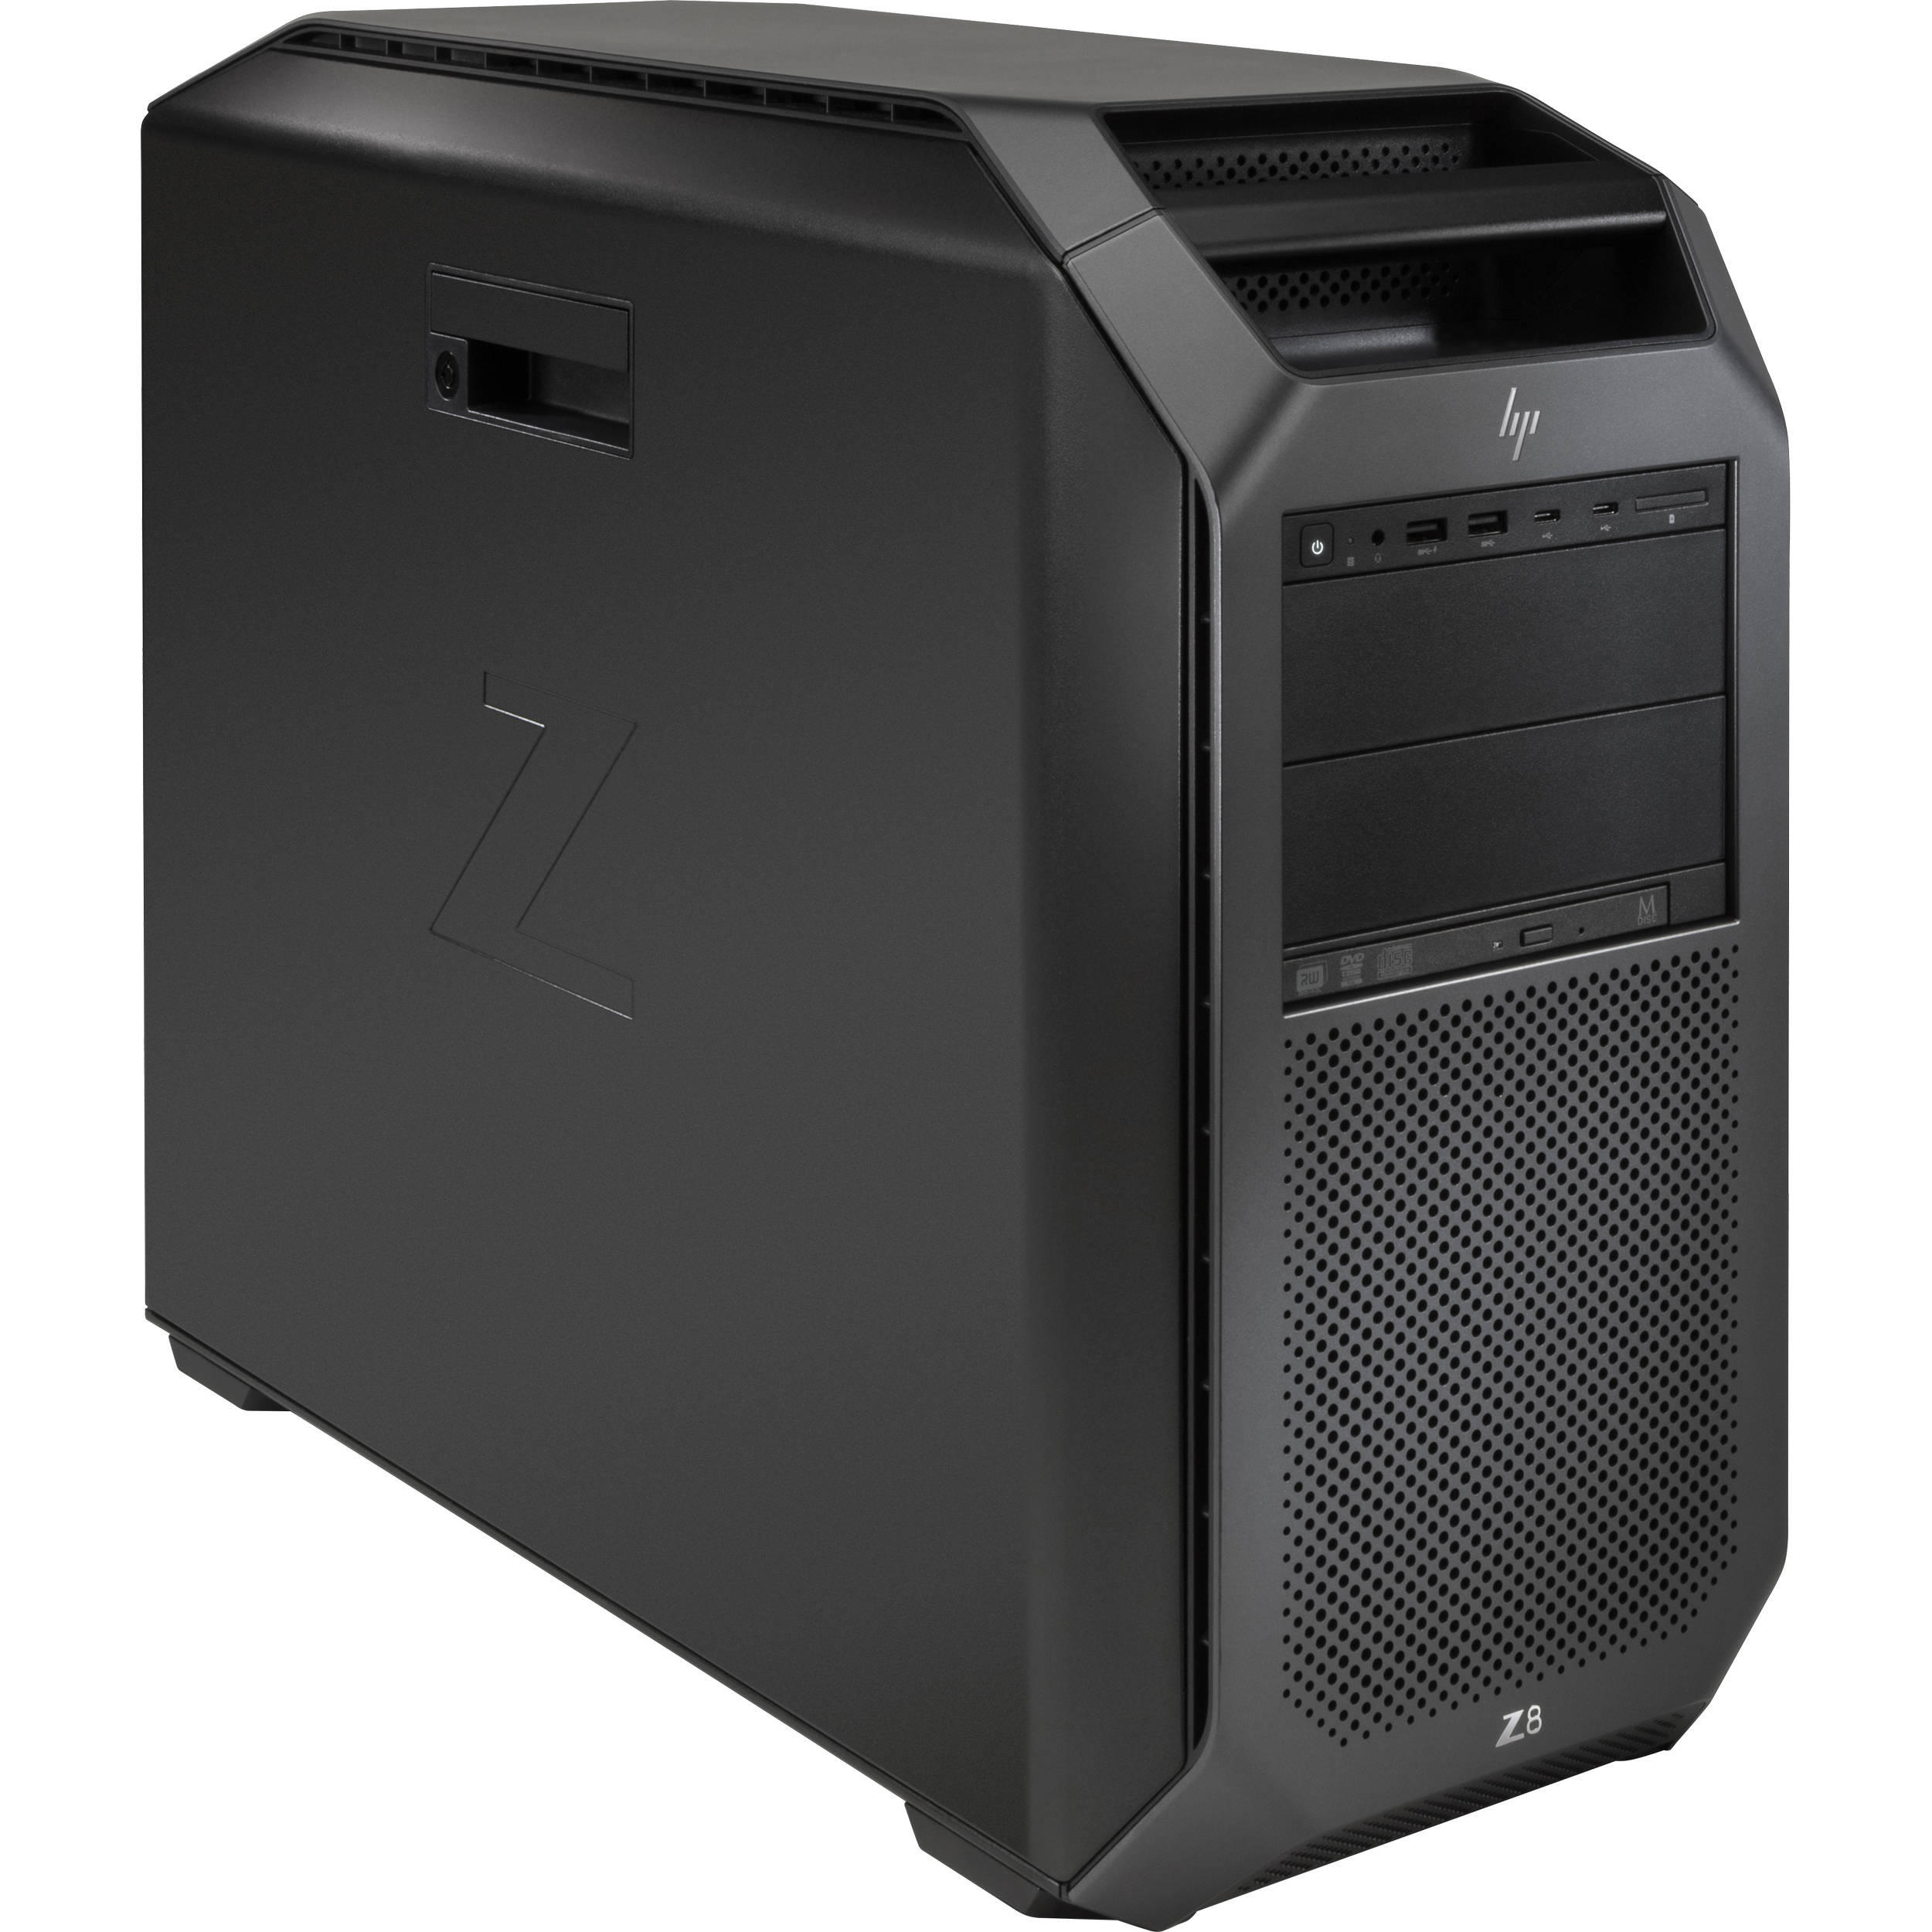 HP Z-series workstations